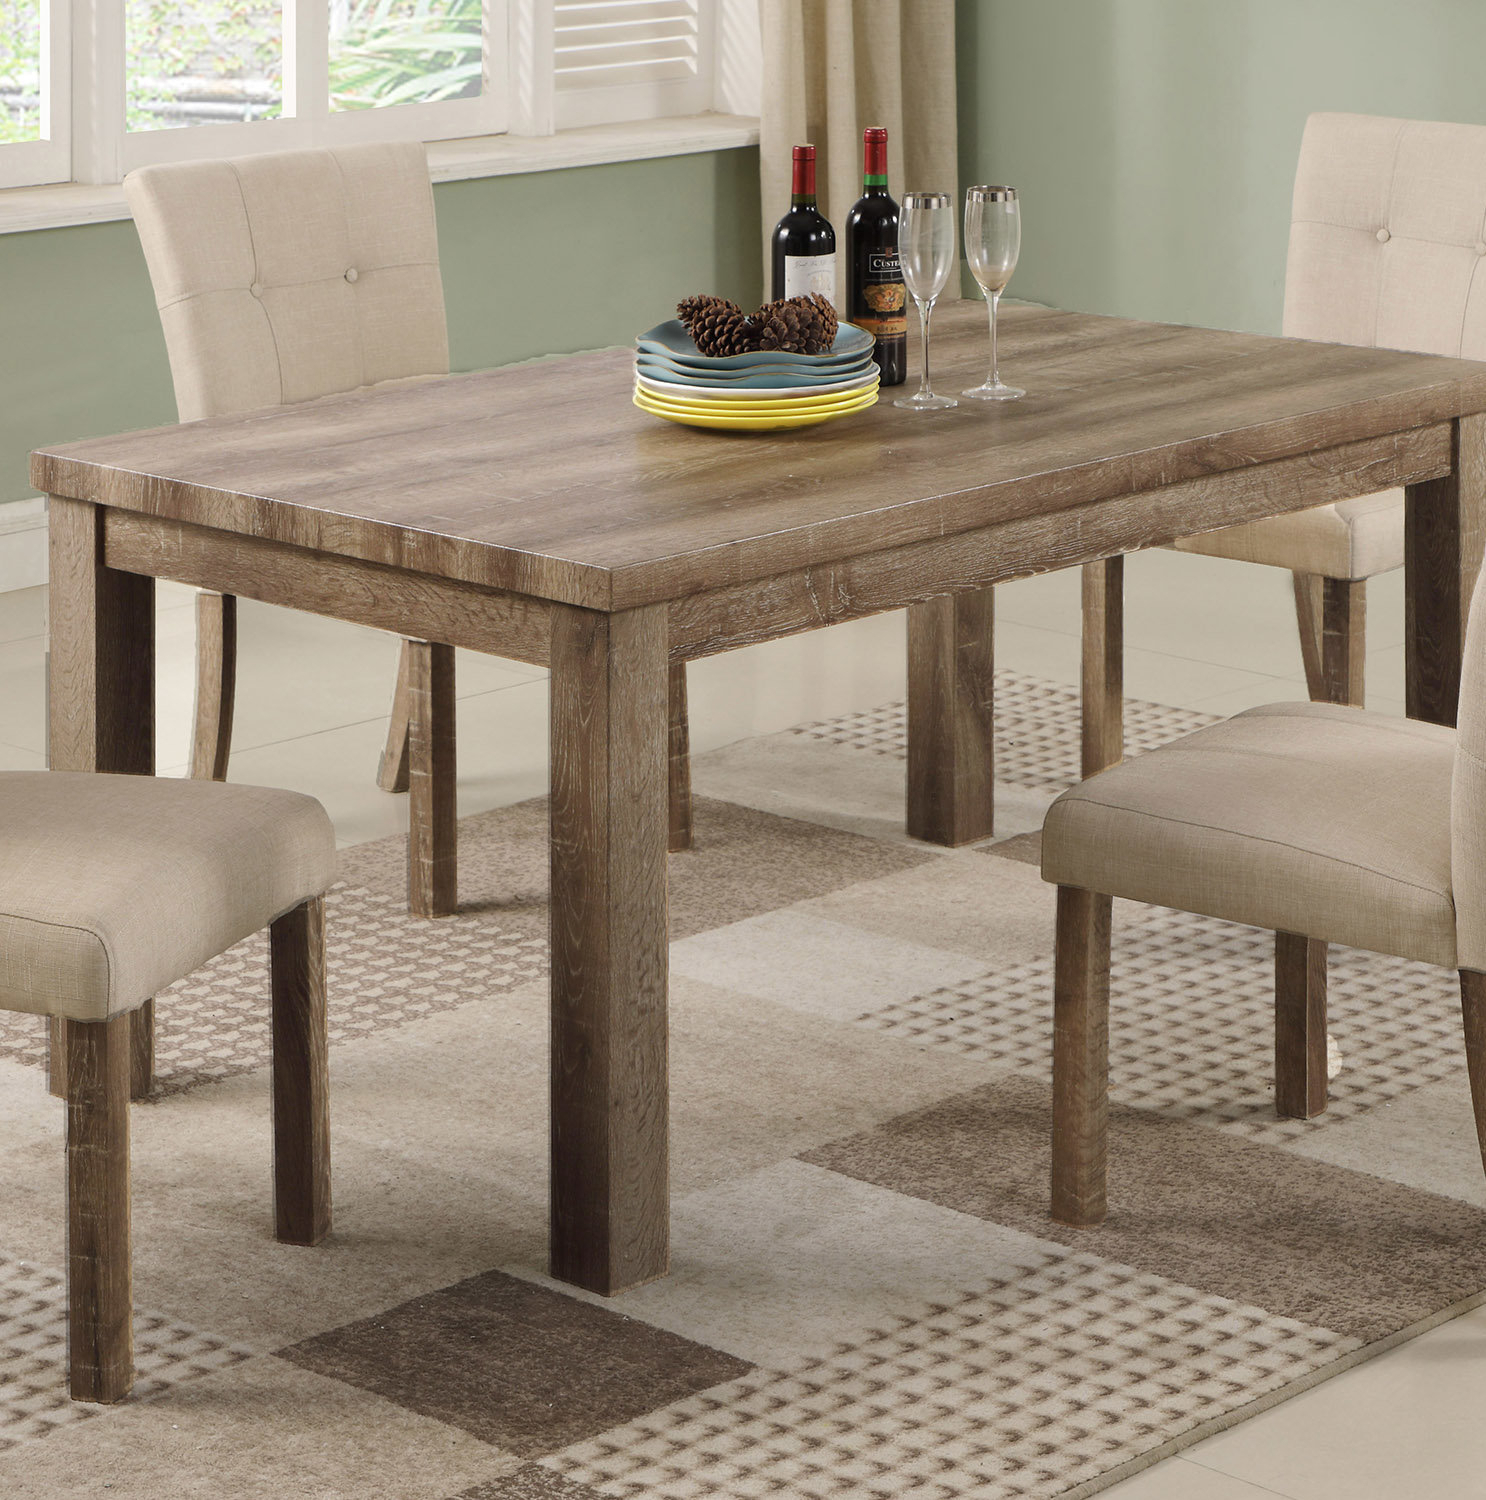 Details About Millwood Pines Ephraim Dining Table With Latest Ephraim 5 Piece Dining Sets (Photo 12 of 20)